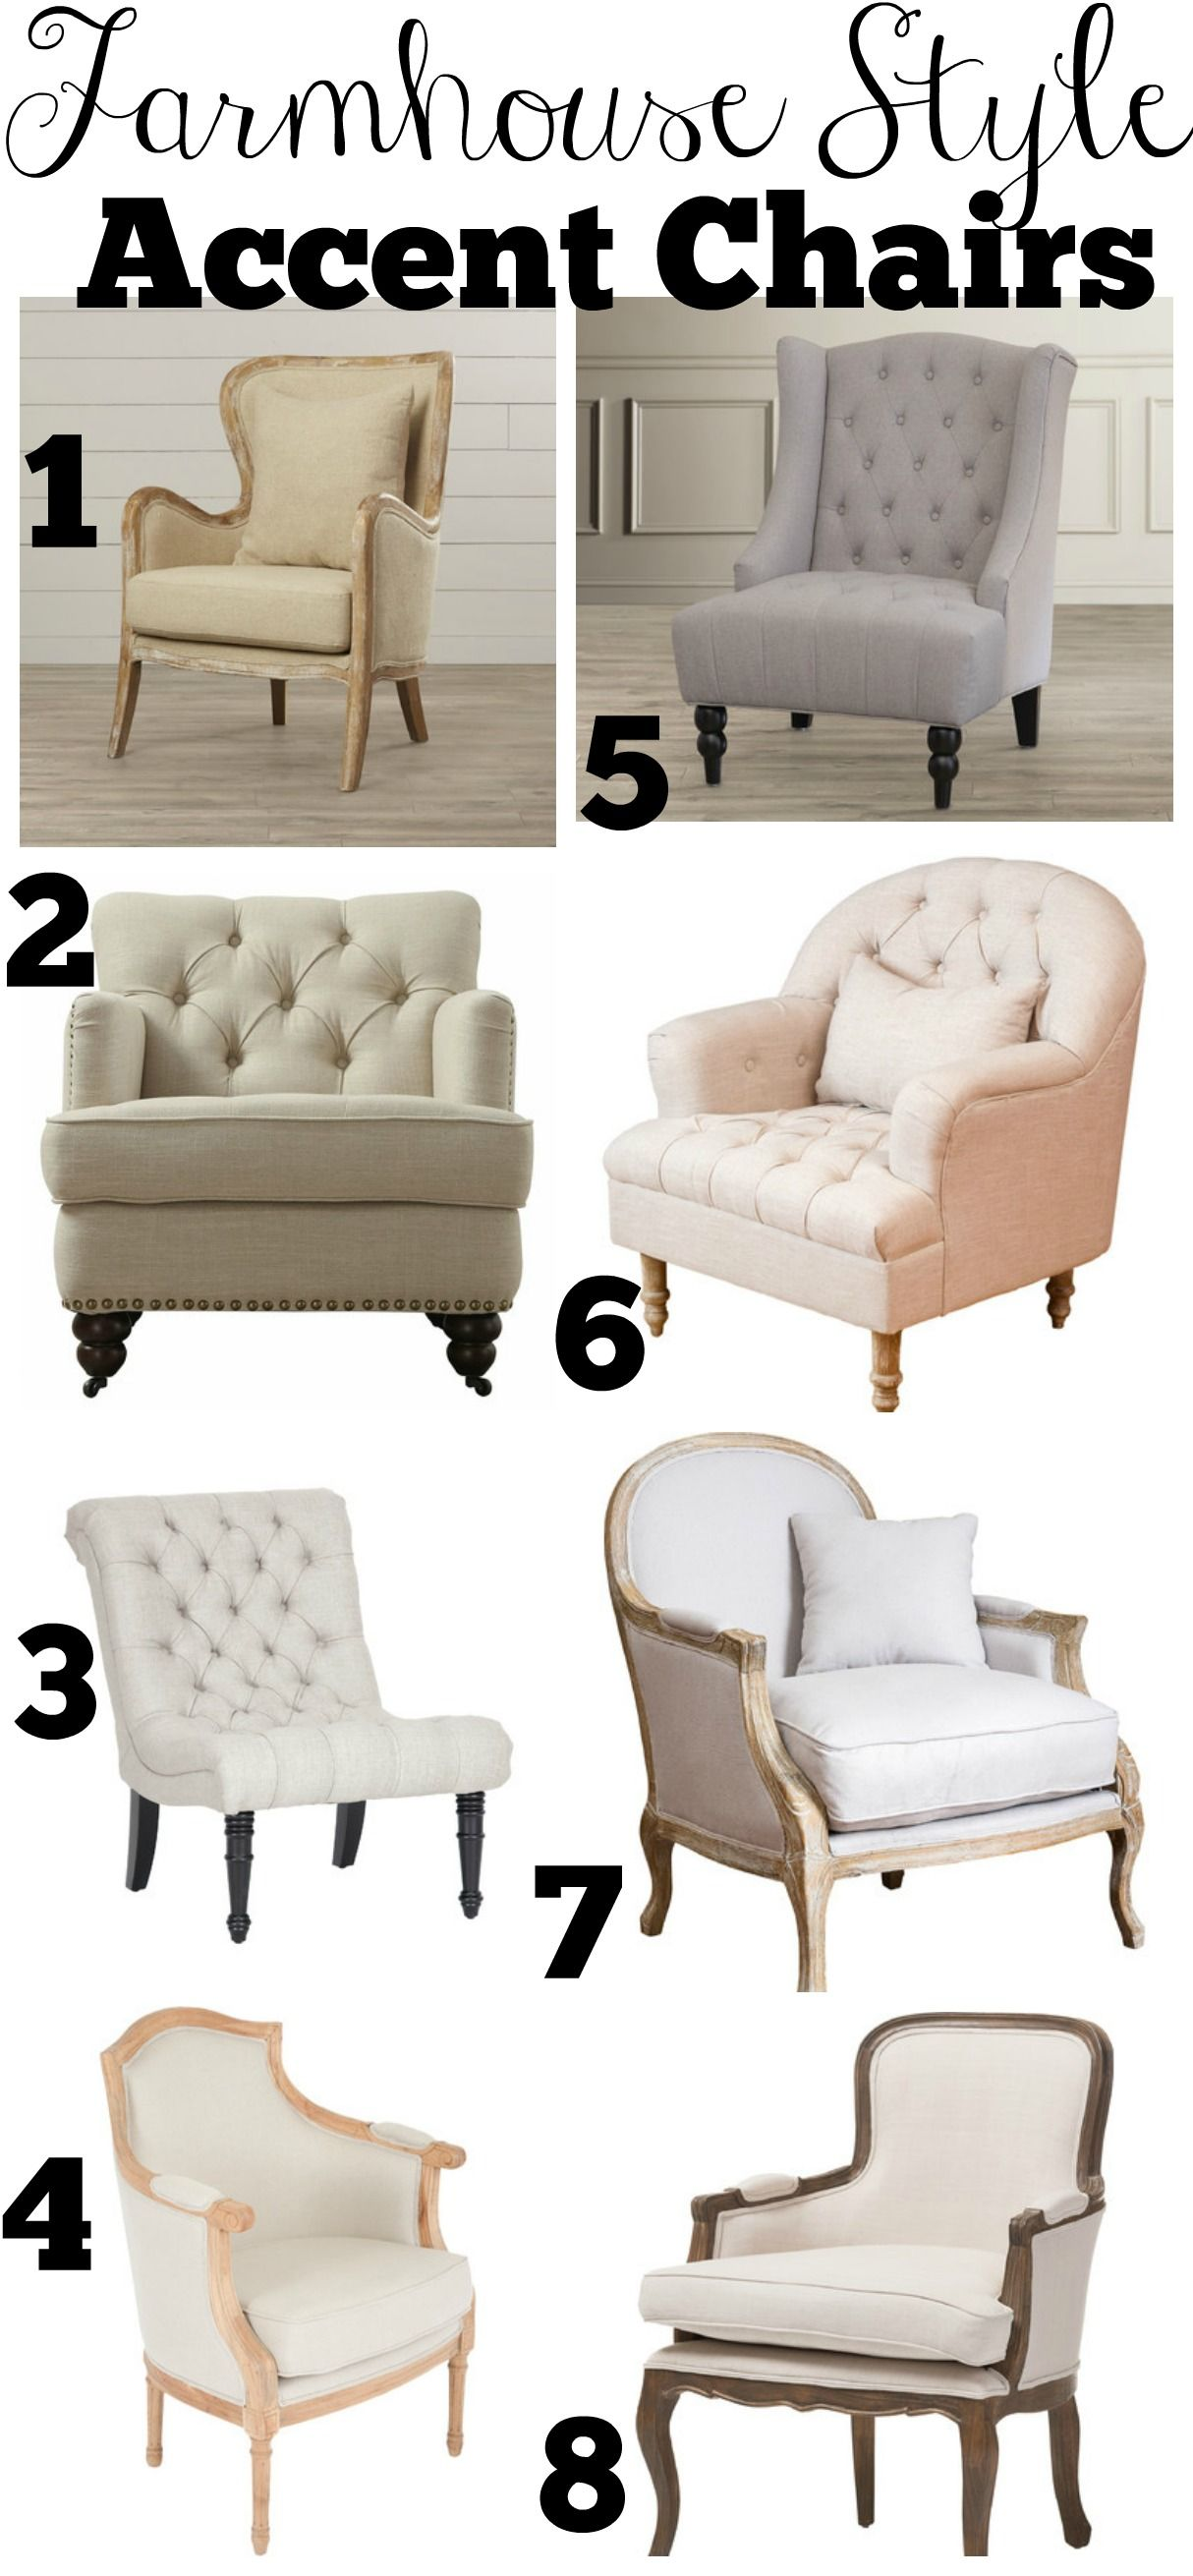 Farmhouse Style Accent Chairs Farmhouse Chairs Home Living Room Living Room Chairs